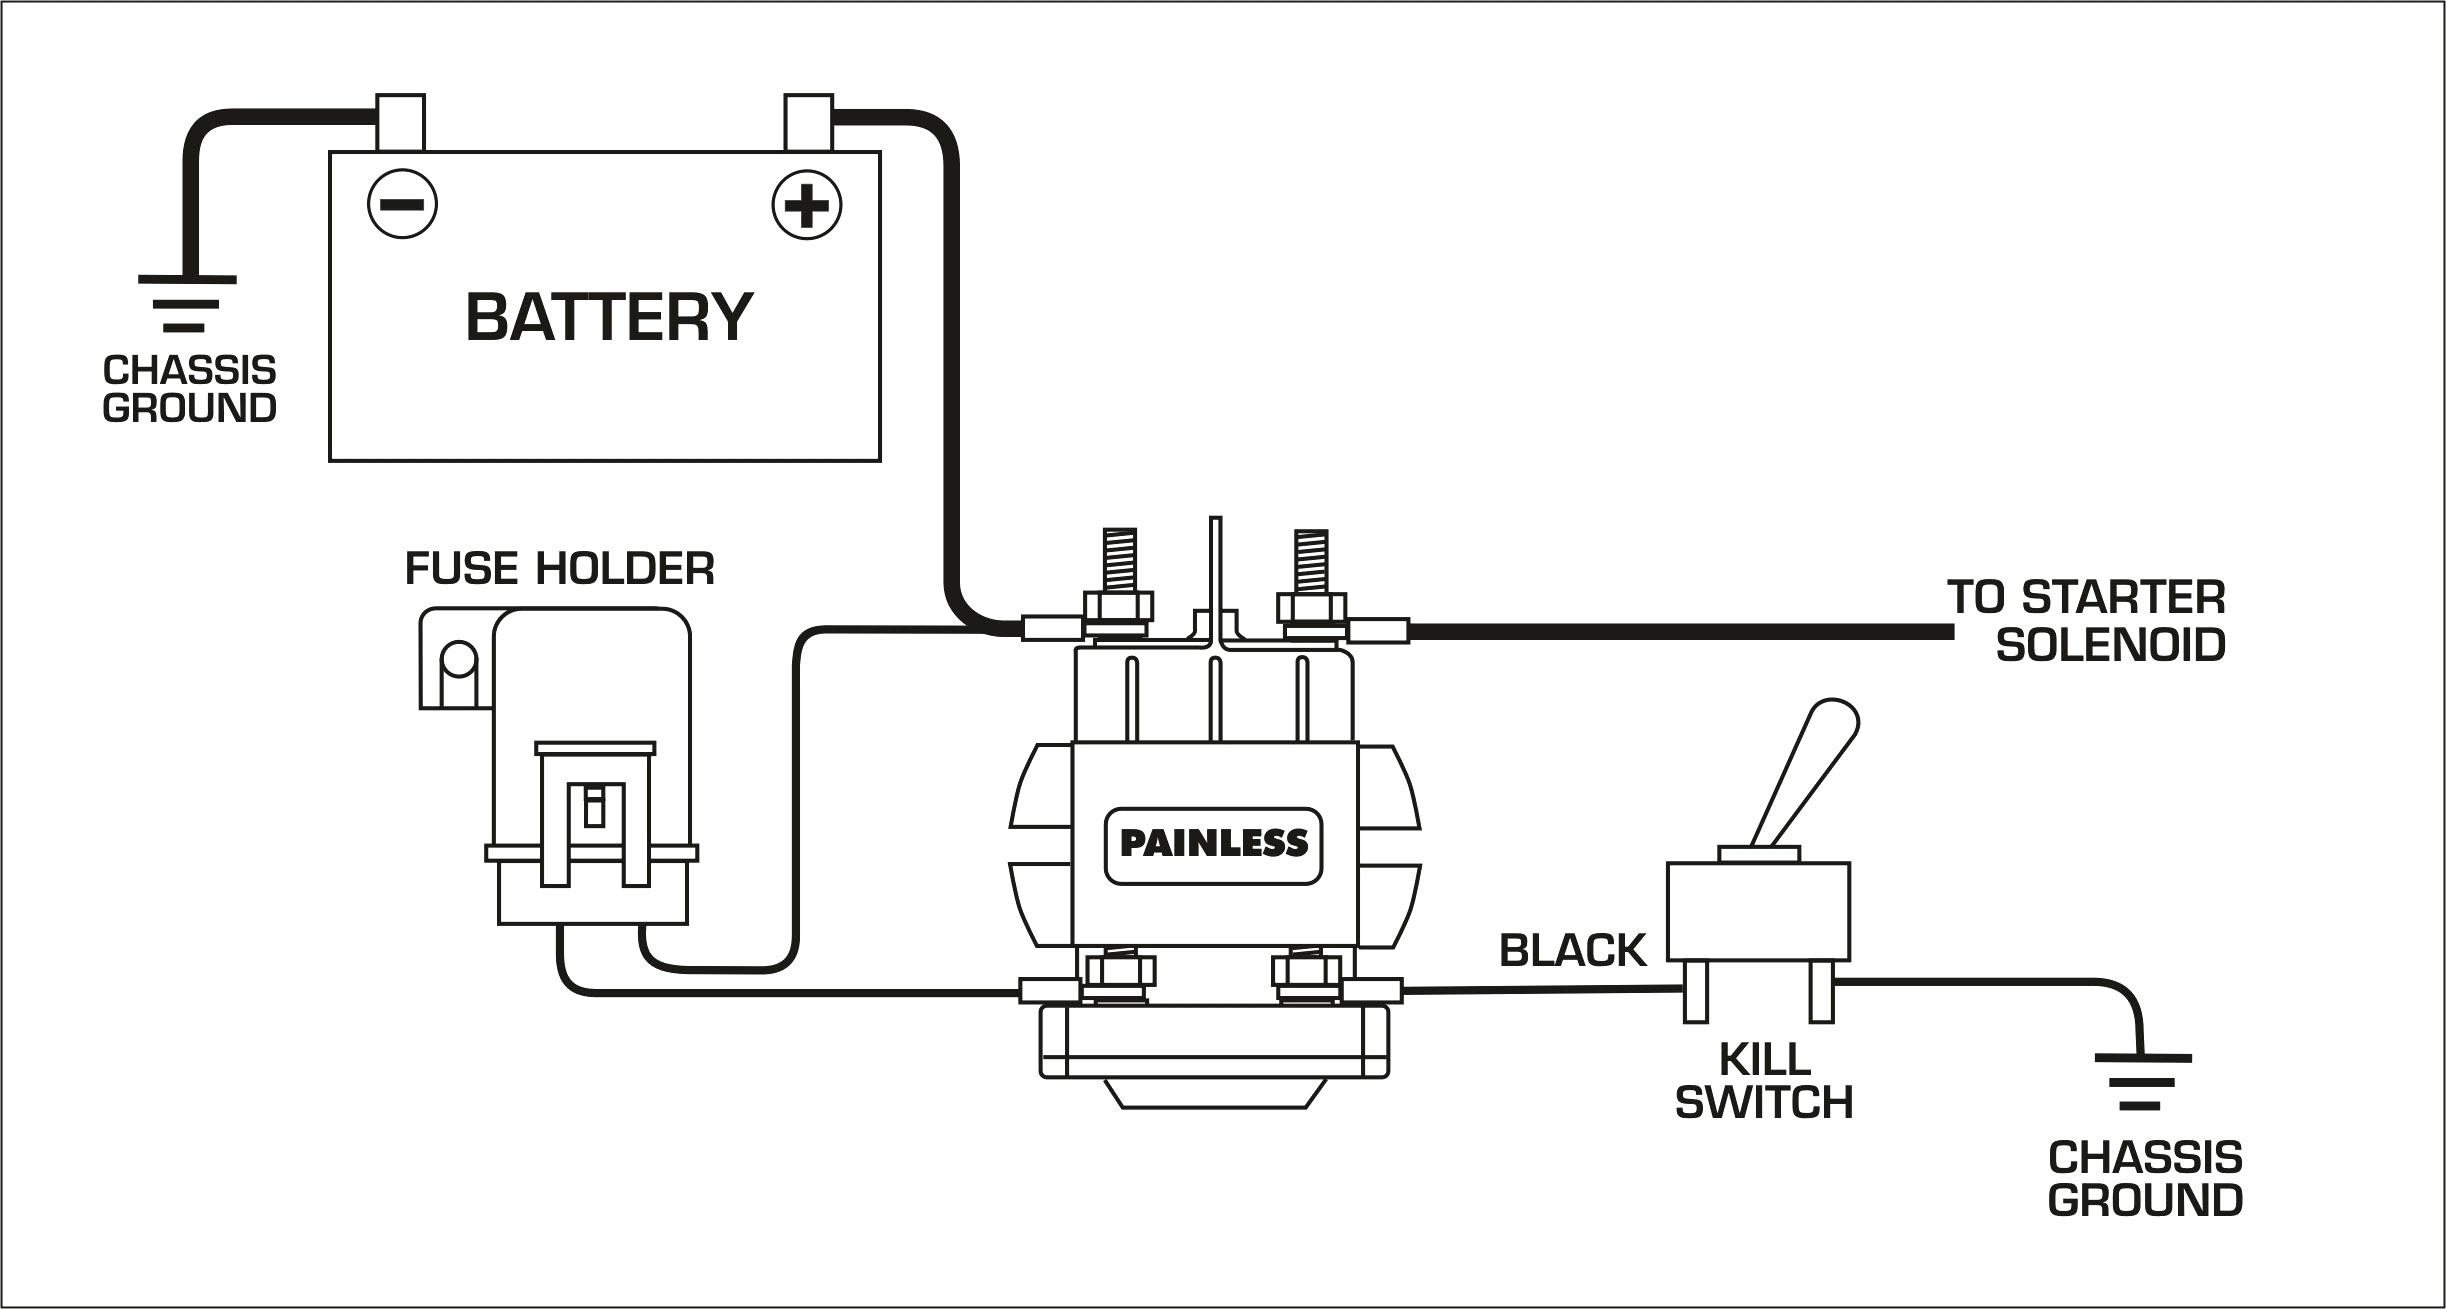 Wiring Diagram For Drag Car - Wiring Diagrams Show on